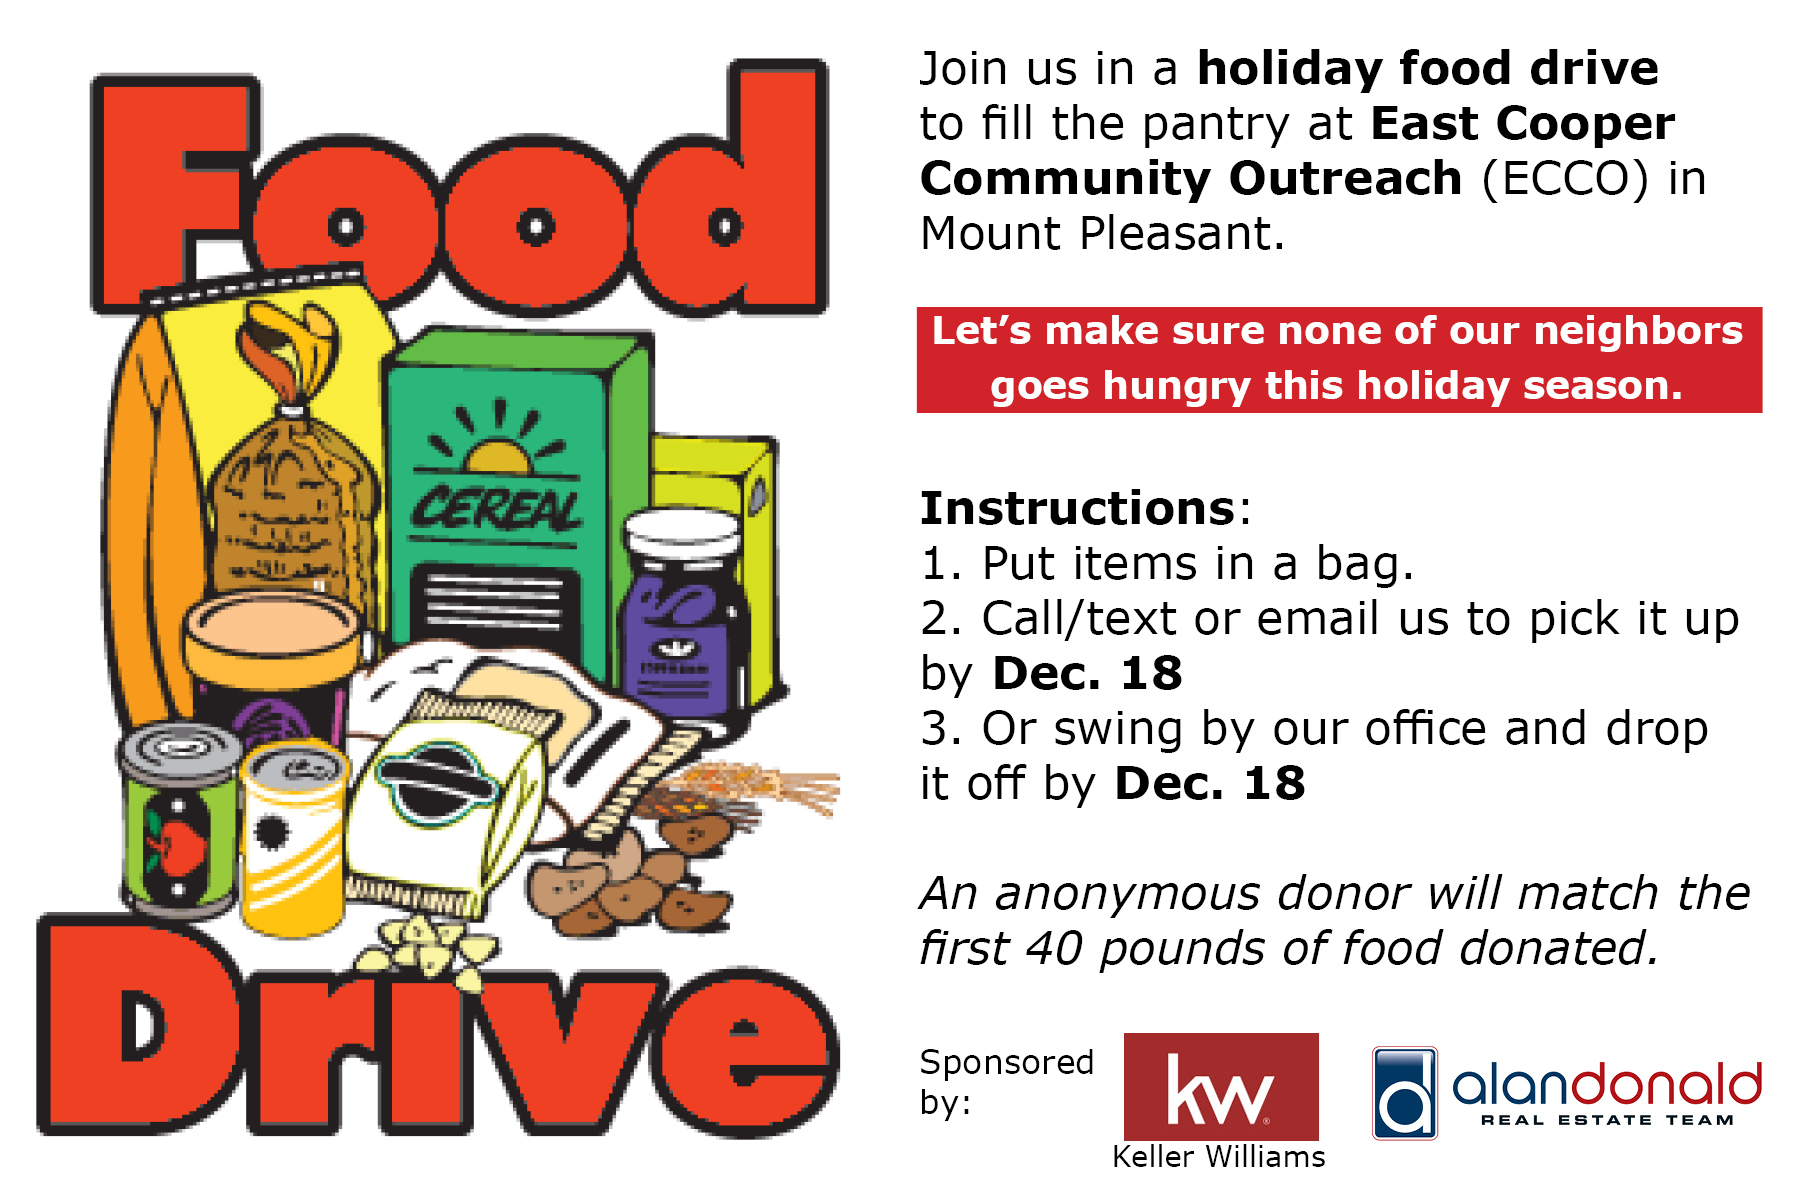 ECCO Holiday Food Drive